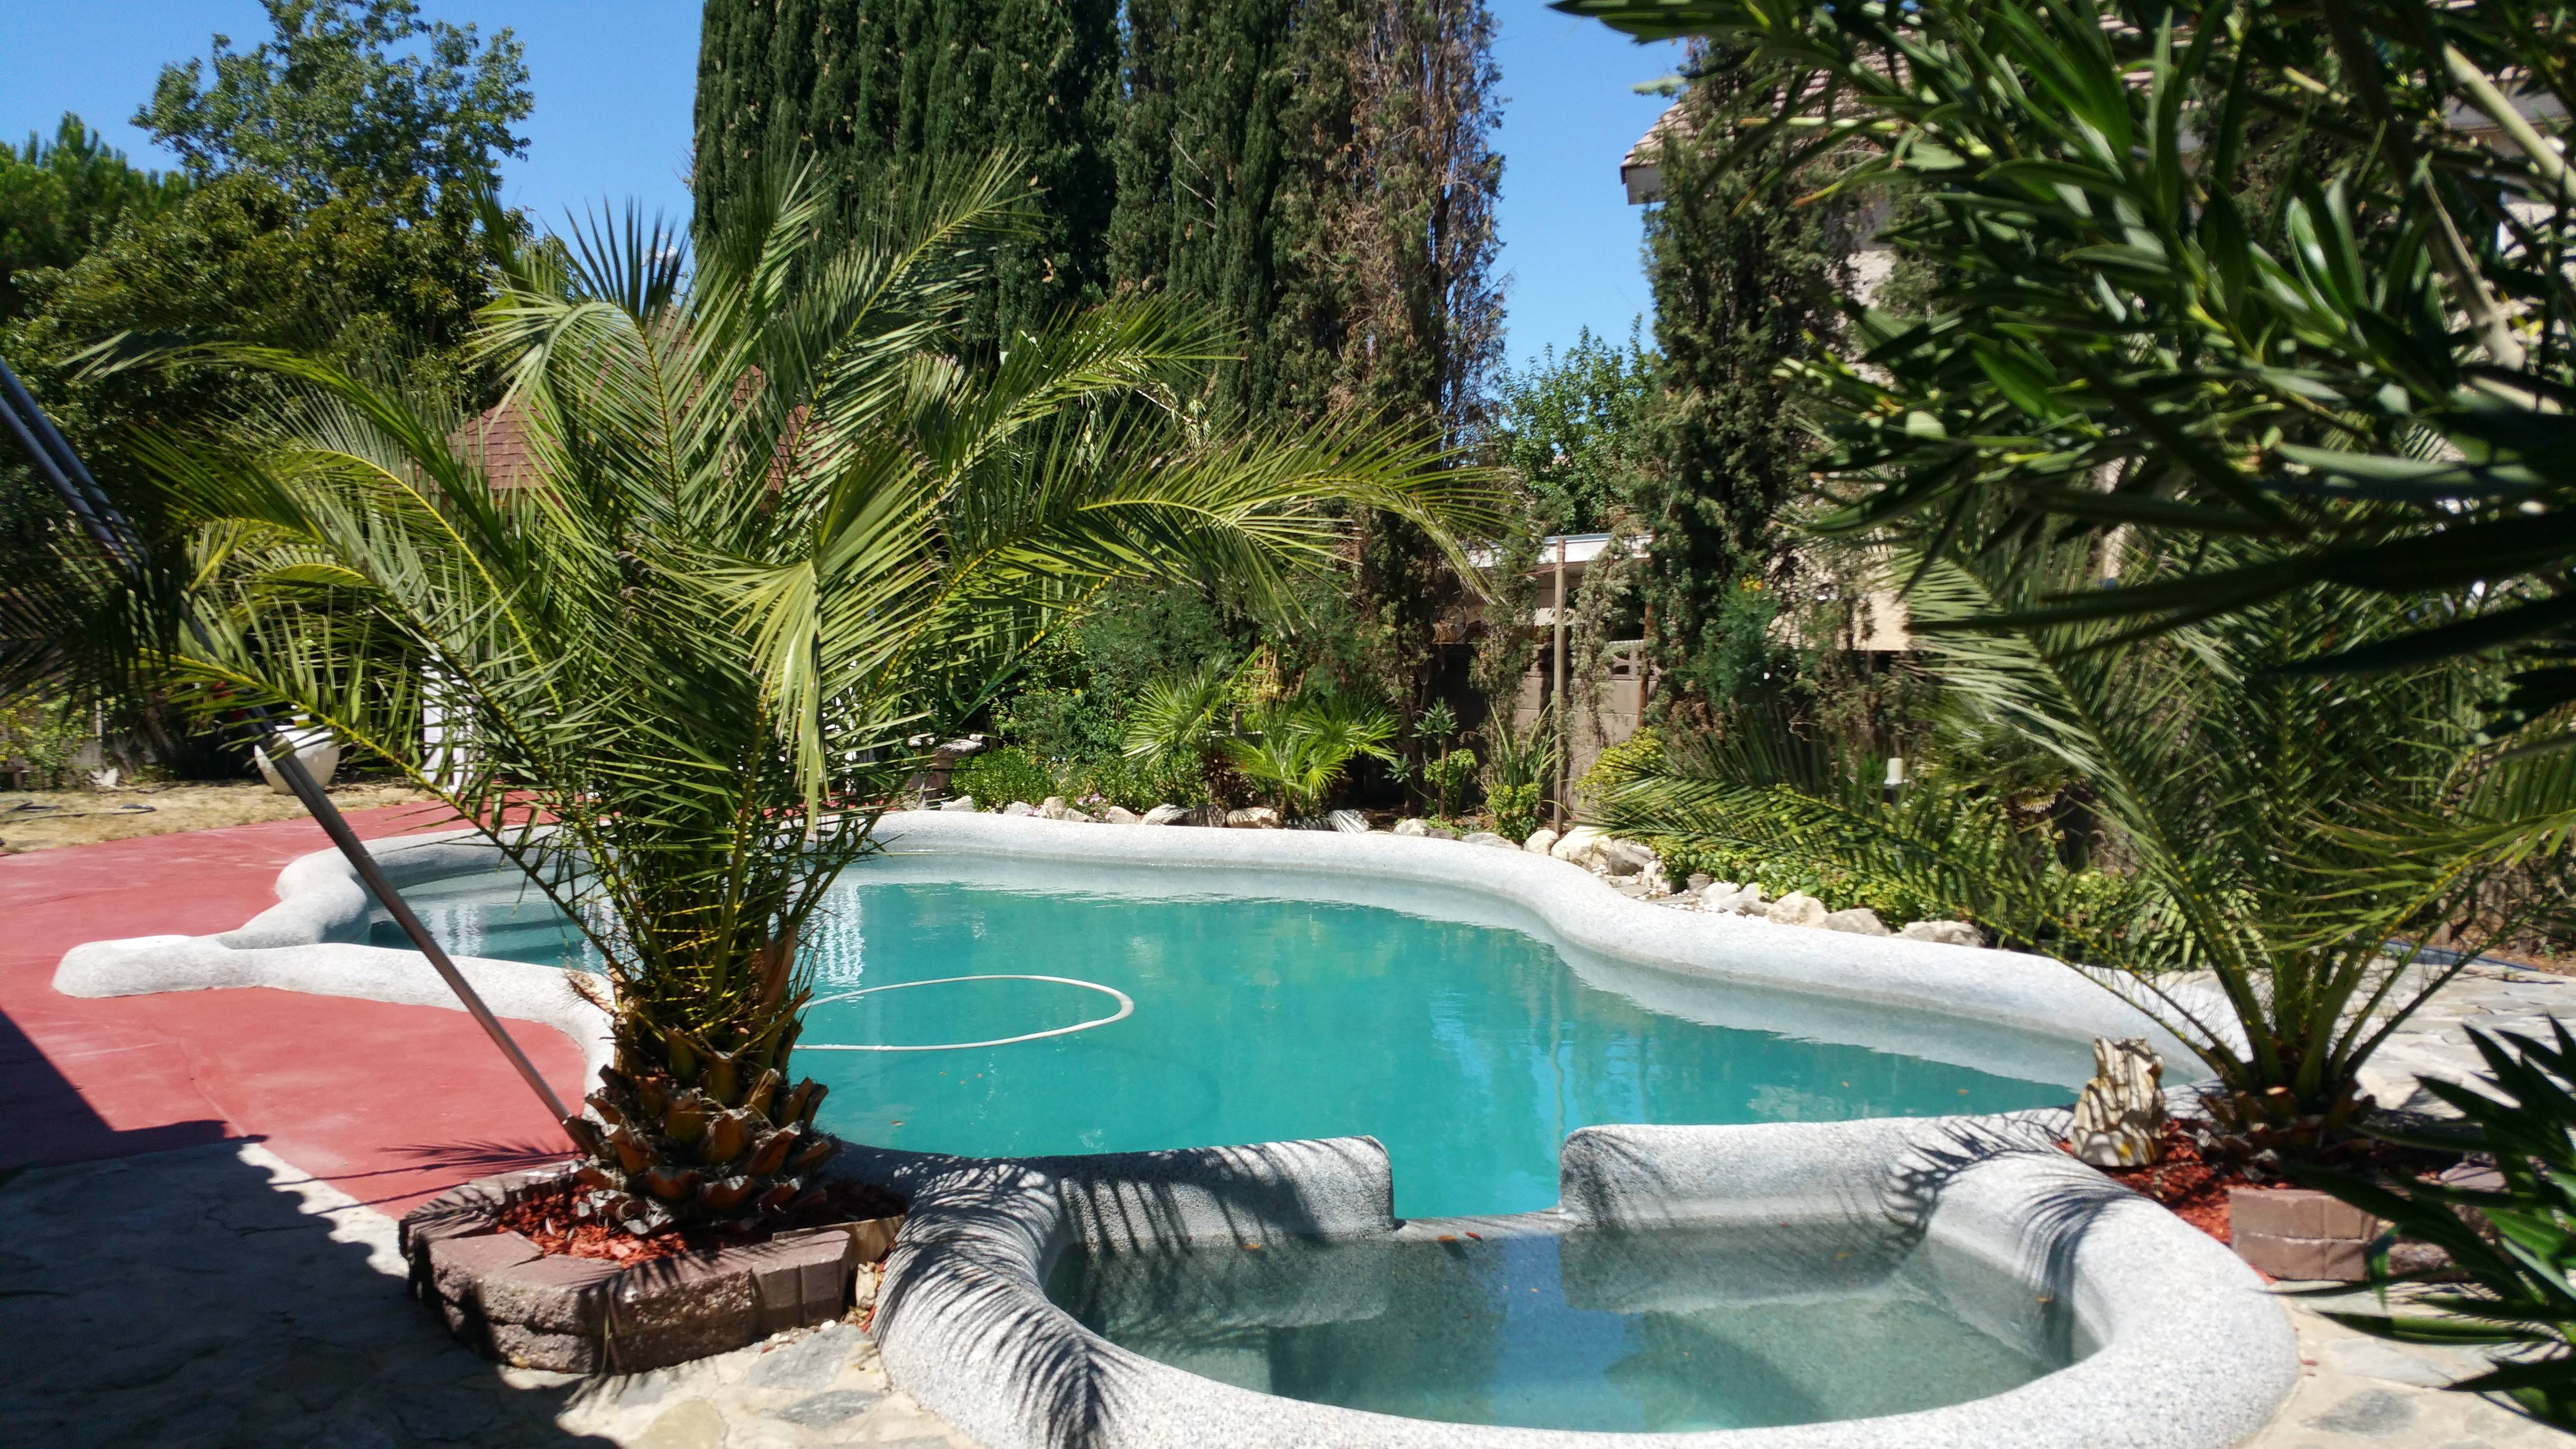 palmdale ca pool home for sale!